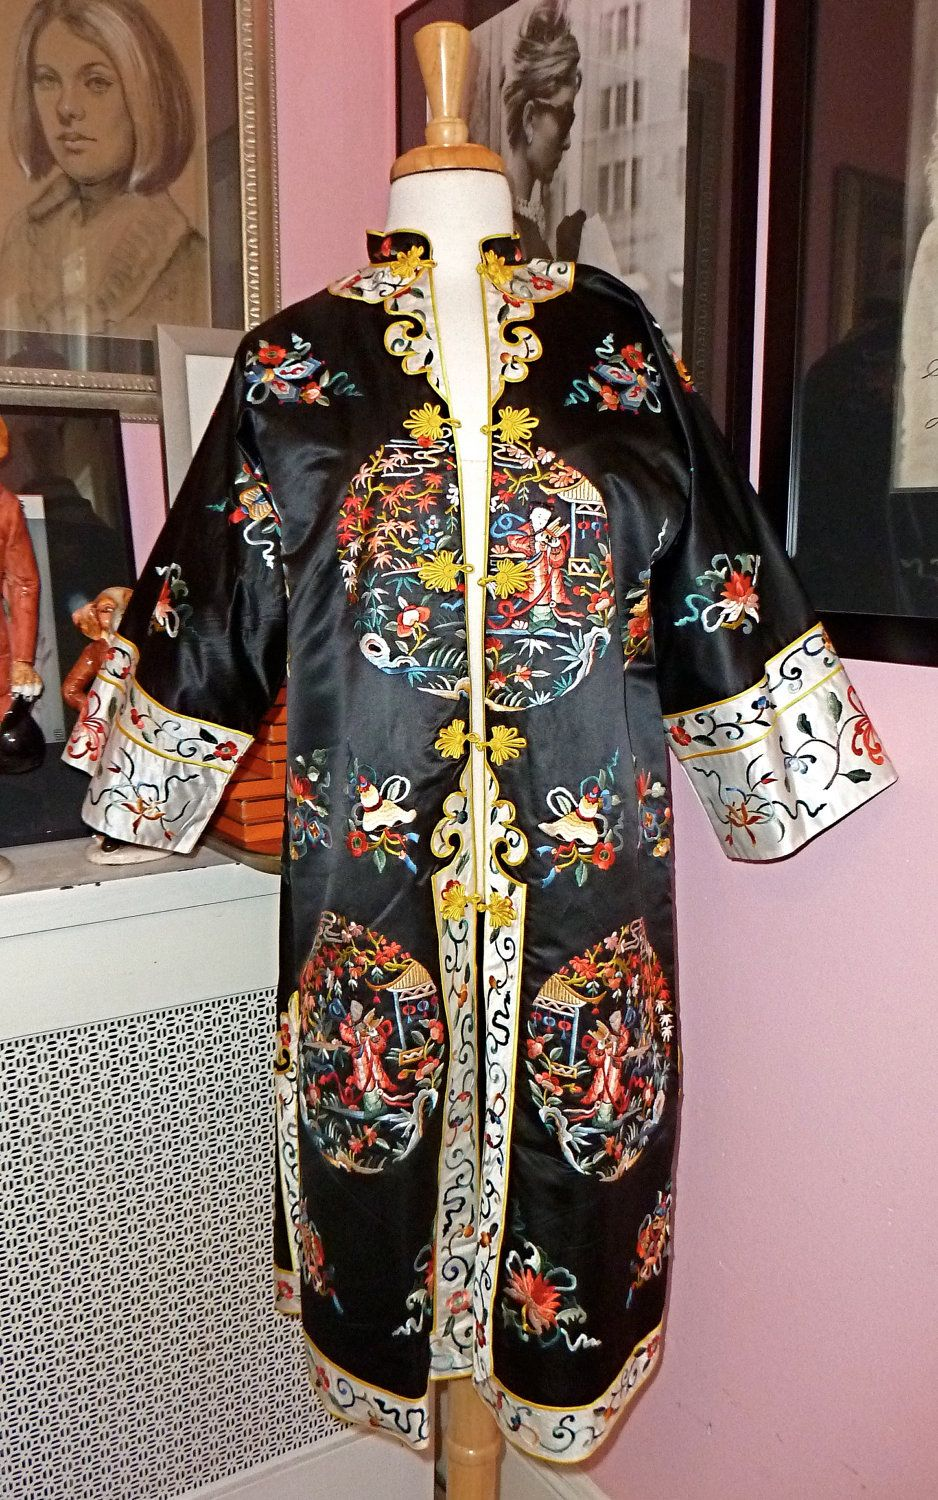 15519f607 Vintage1960s Embroidered Chinese Jacket - 60s Embroidered Silk Kimono Coat  - Pagodas -Geishas - Birds - Flower Print - Size Medium/ Large.